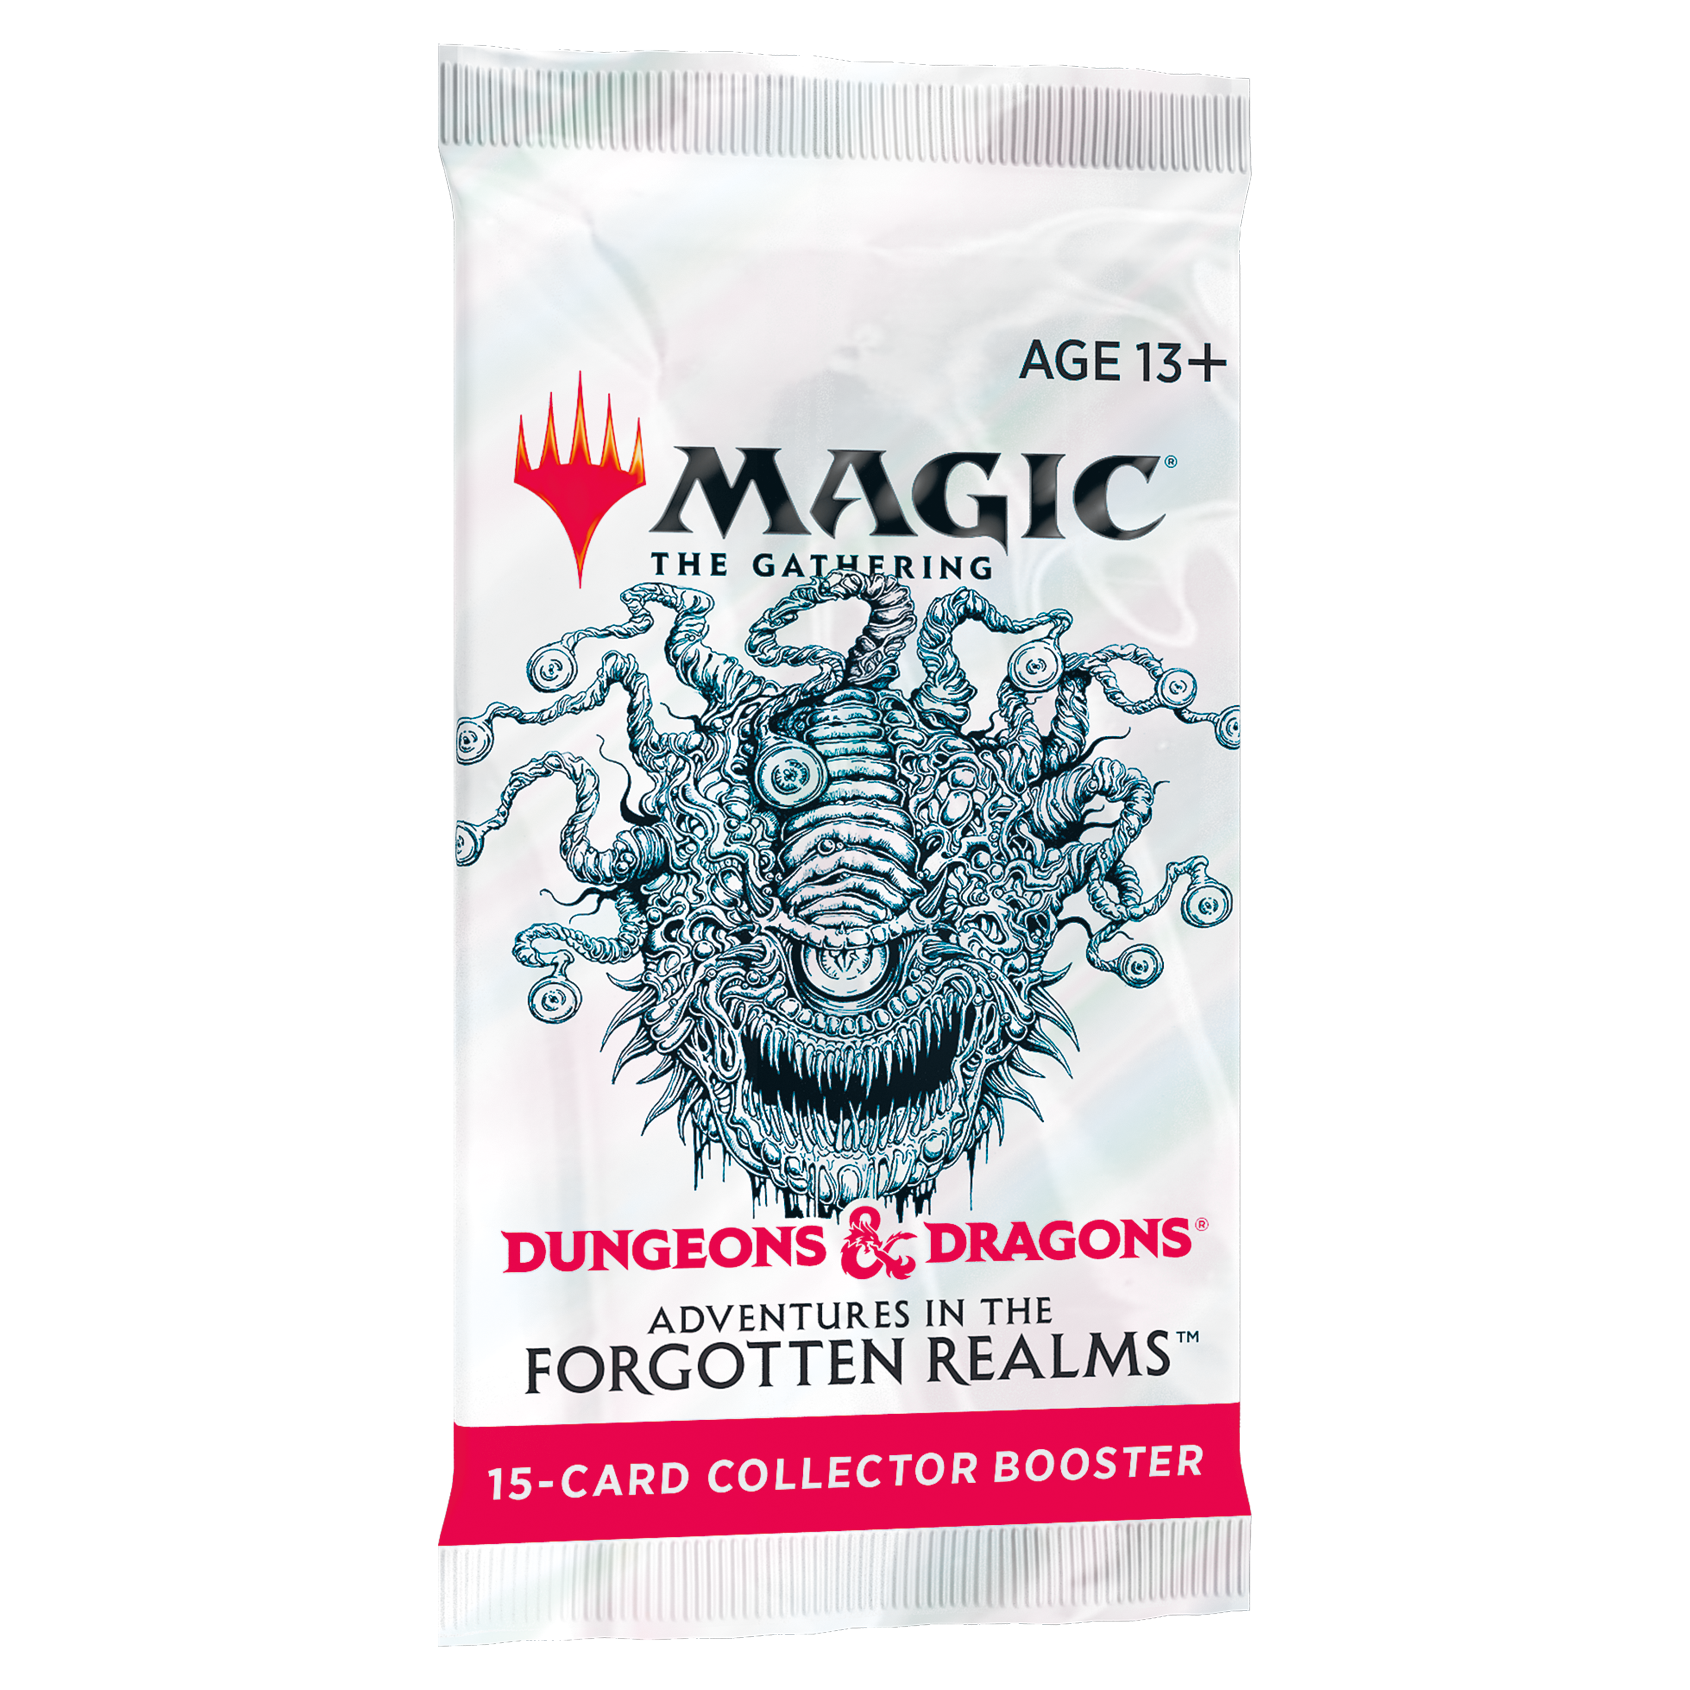 Dungeons & Dragons Adventures in the Forgotten Realms Collector Booster